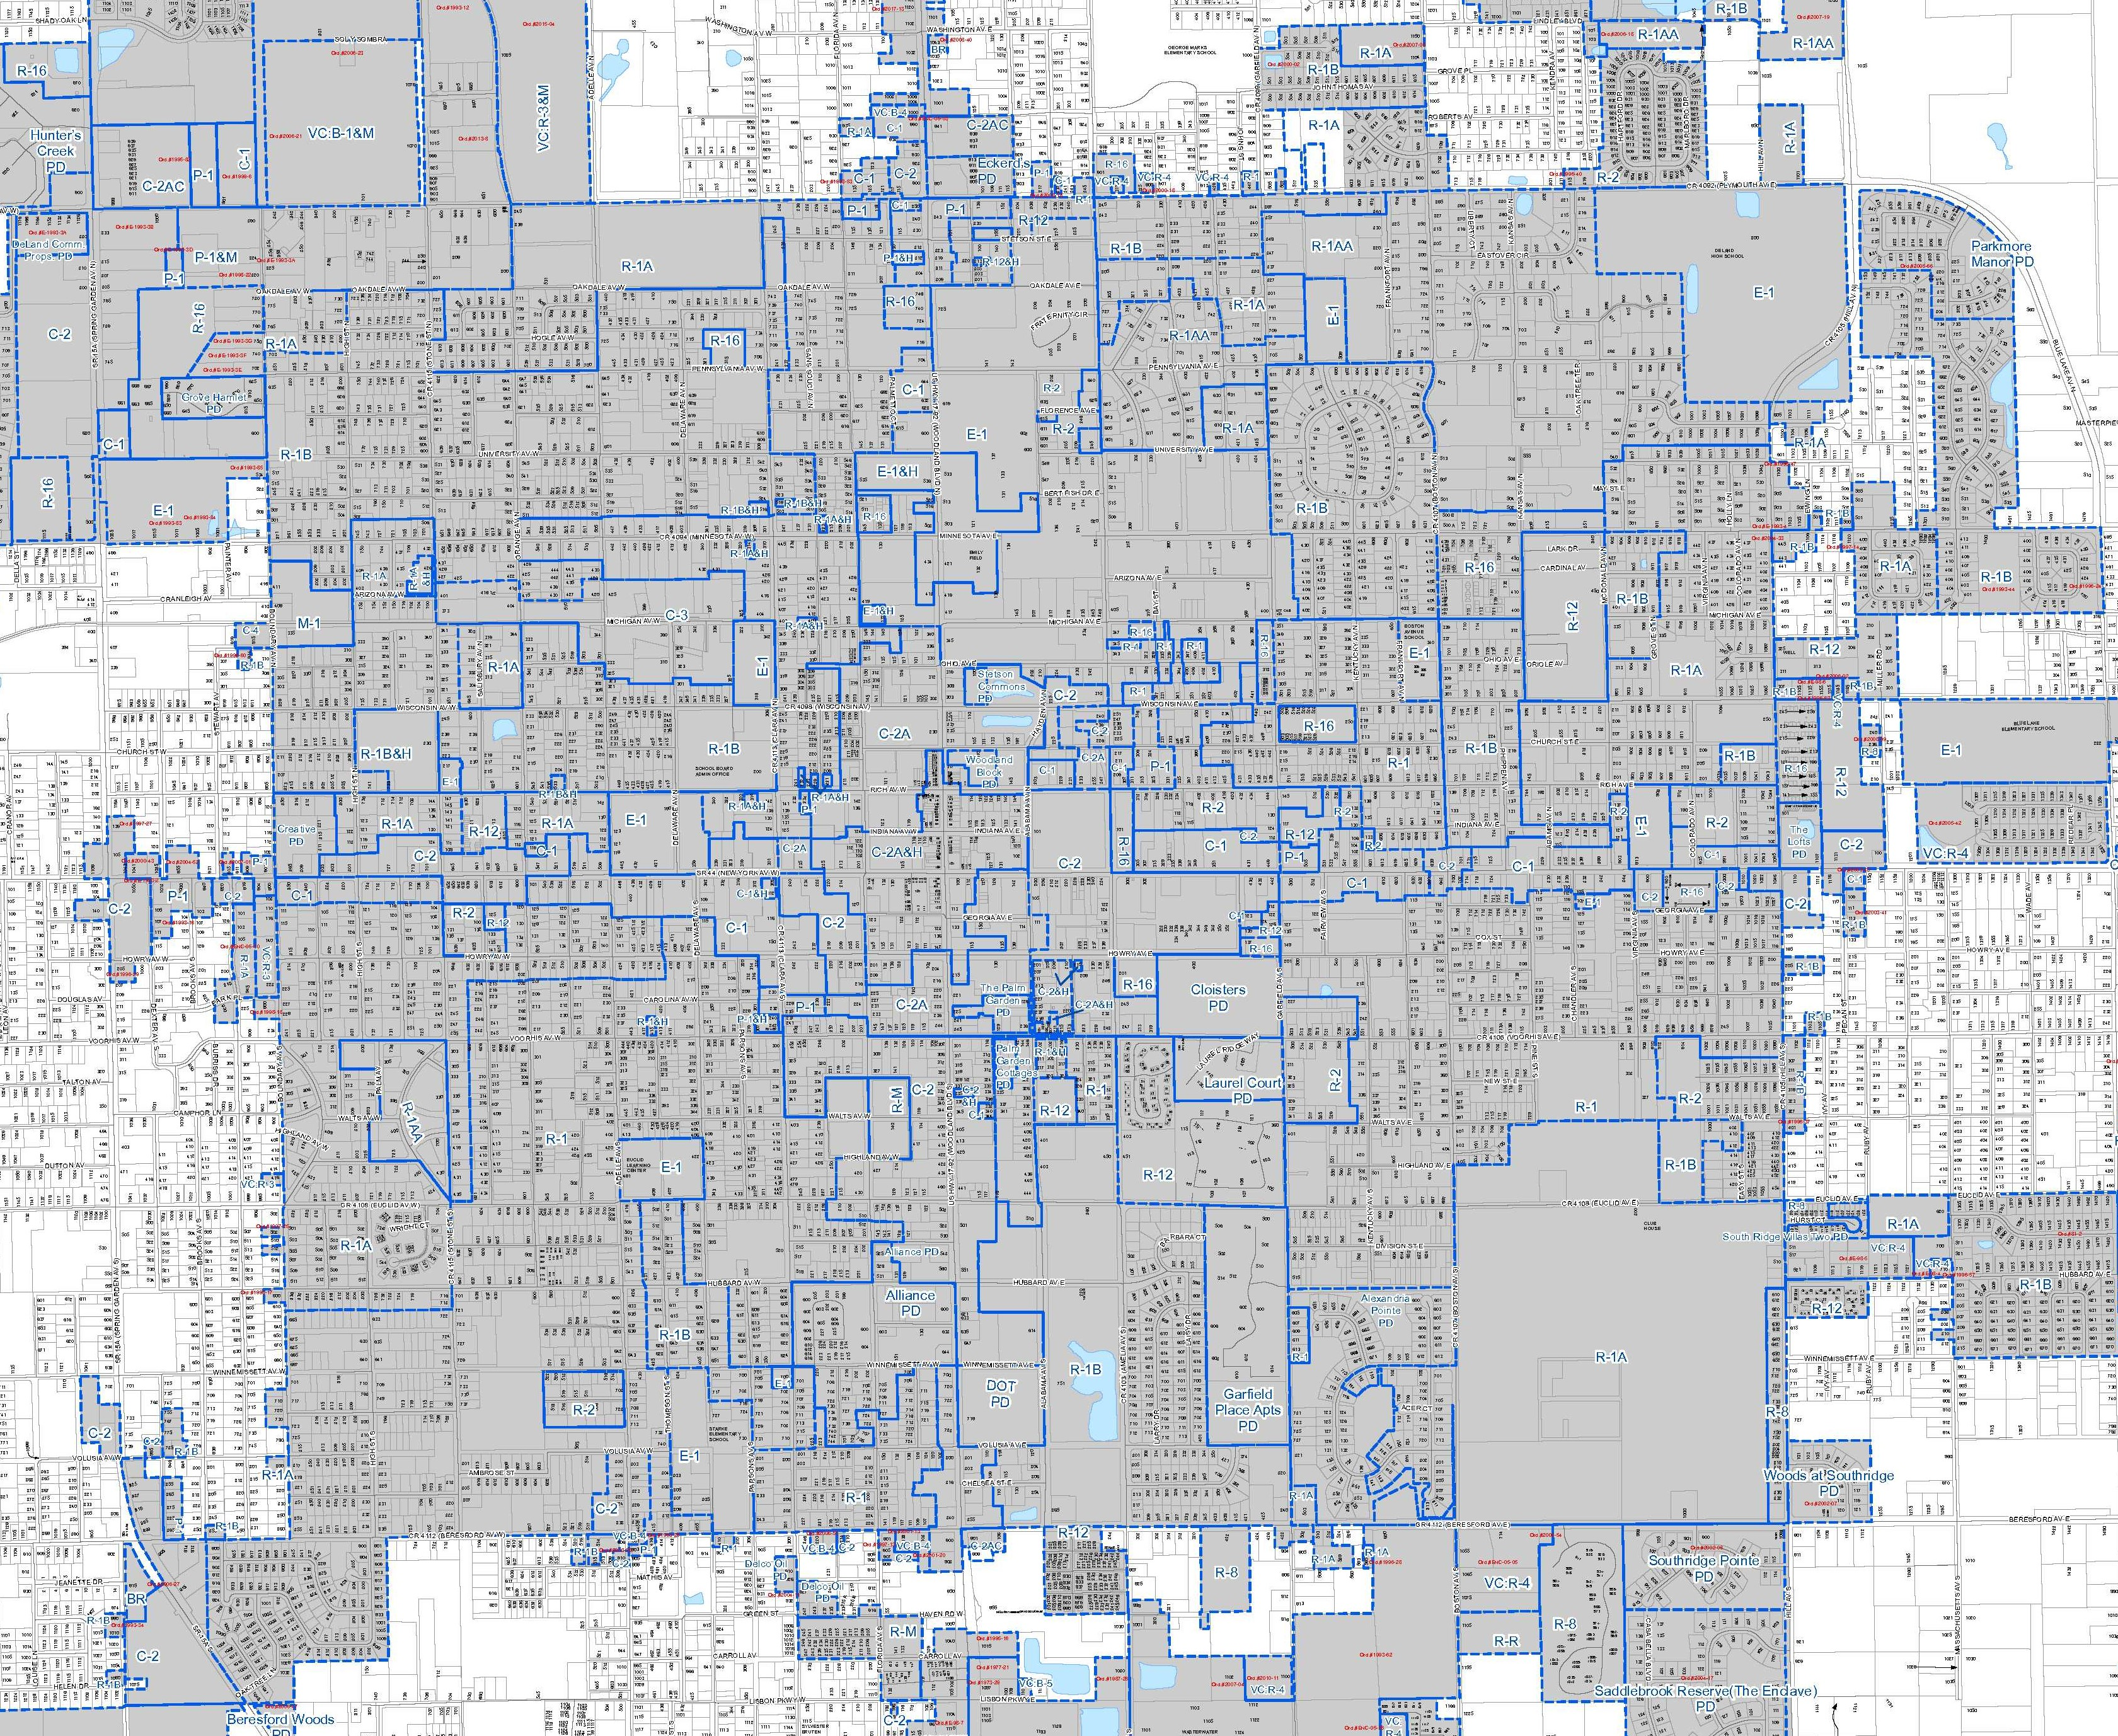 what is a-1 zoning in florida - calcoq